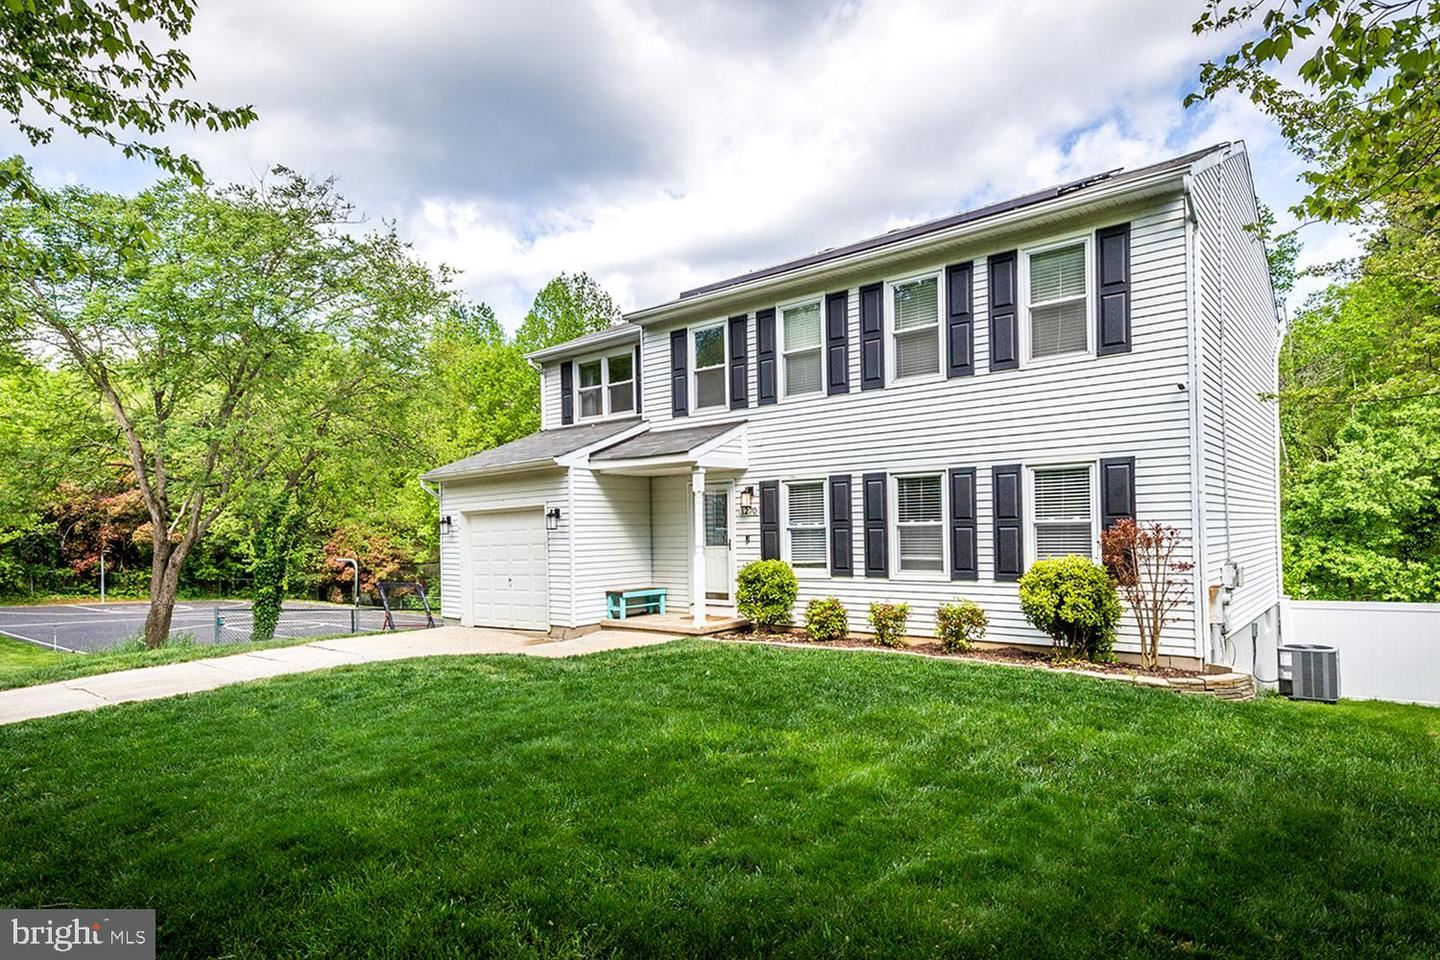 1270 DOUBLEDAY DR, Arnold, MD 21012 - MLS#: MDAA467150